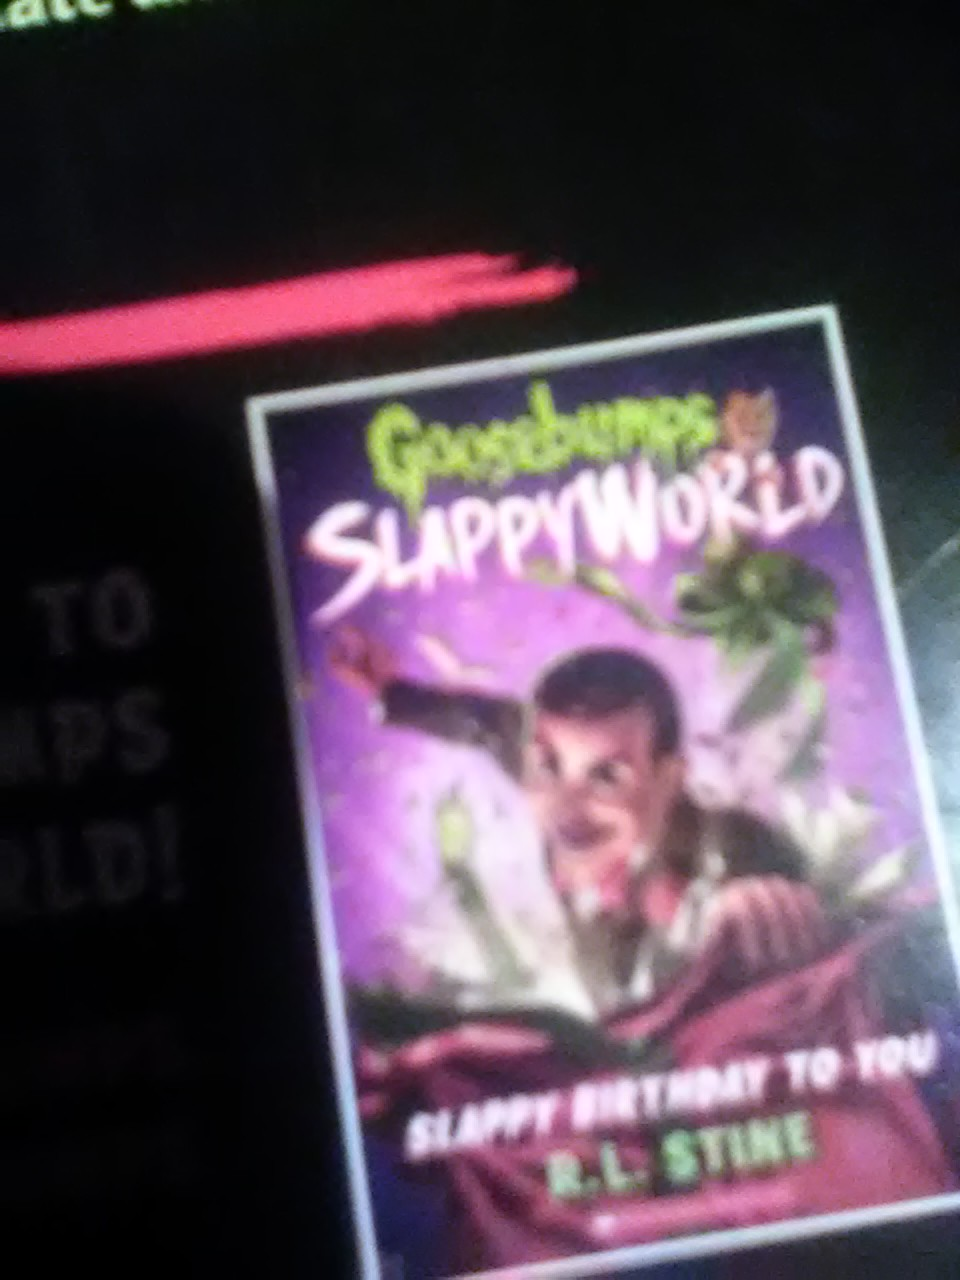 Goosebumps SlappyWorld: #2 Attack of the Jack! by Stine,R,L Paperback Book